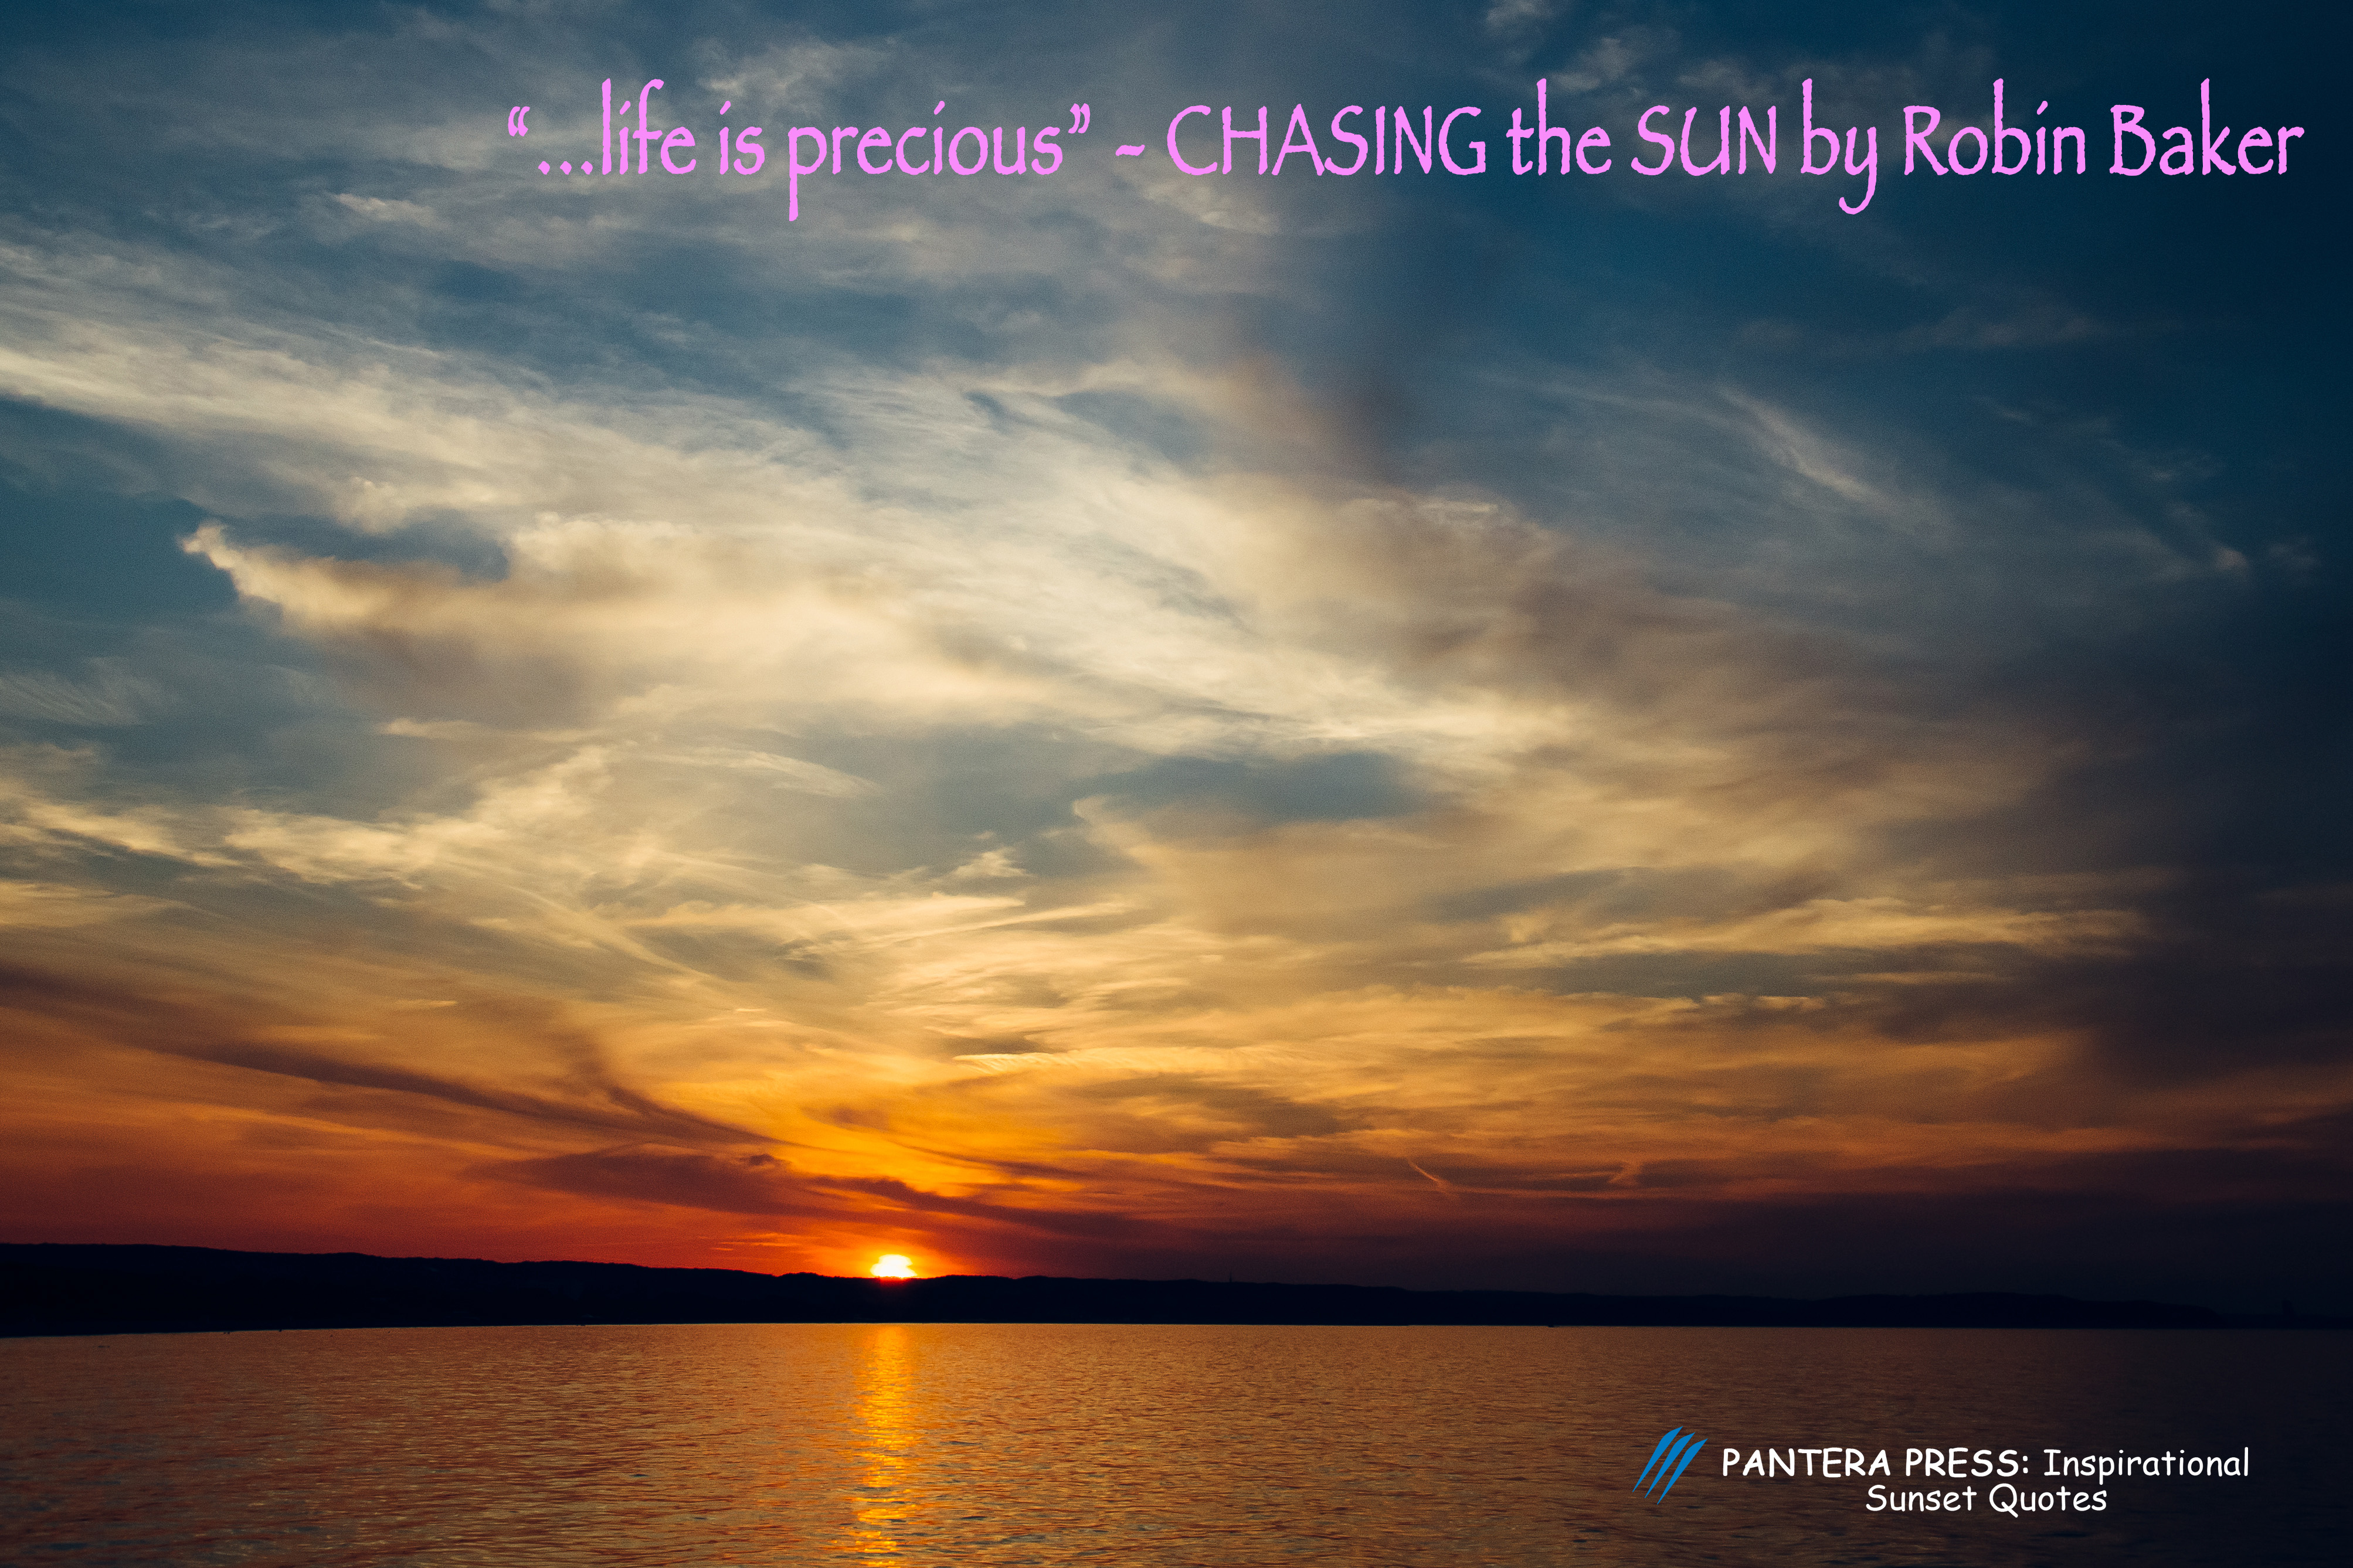 Inspirational Quotes On Sunset Pictures Pantera Press